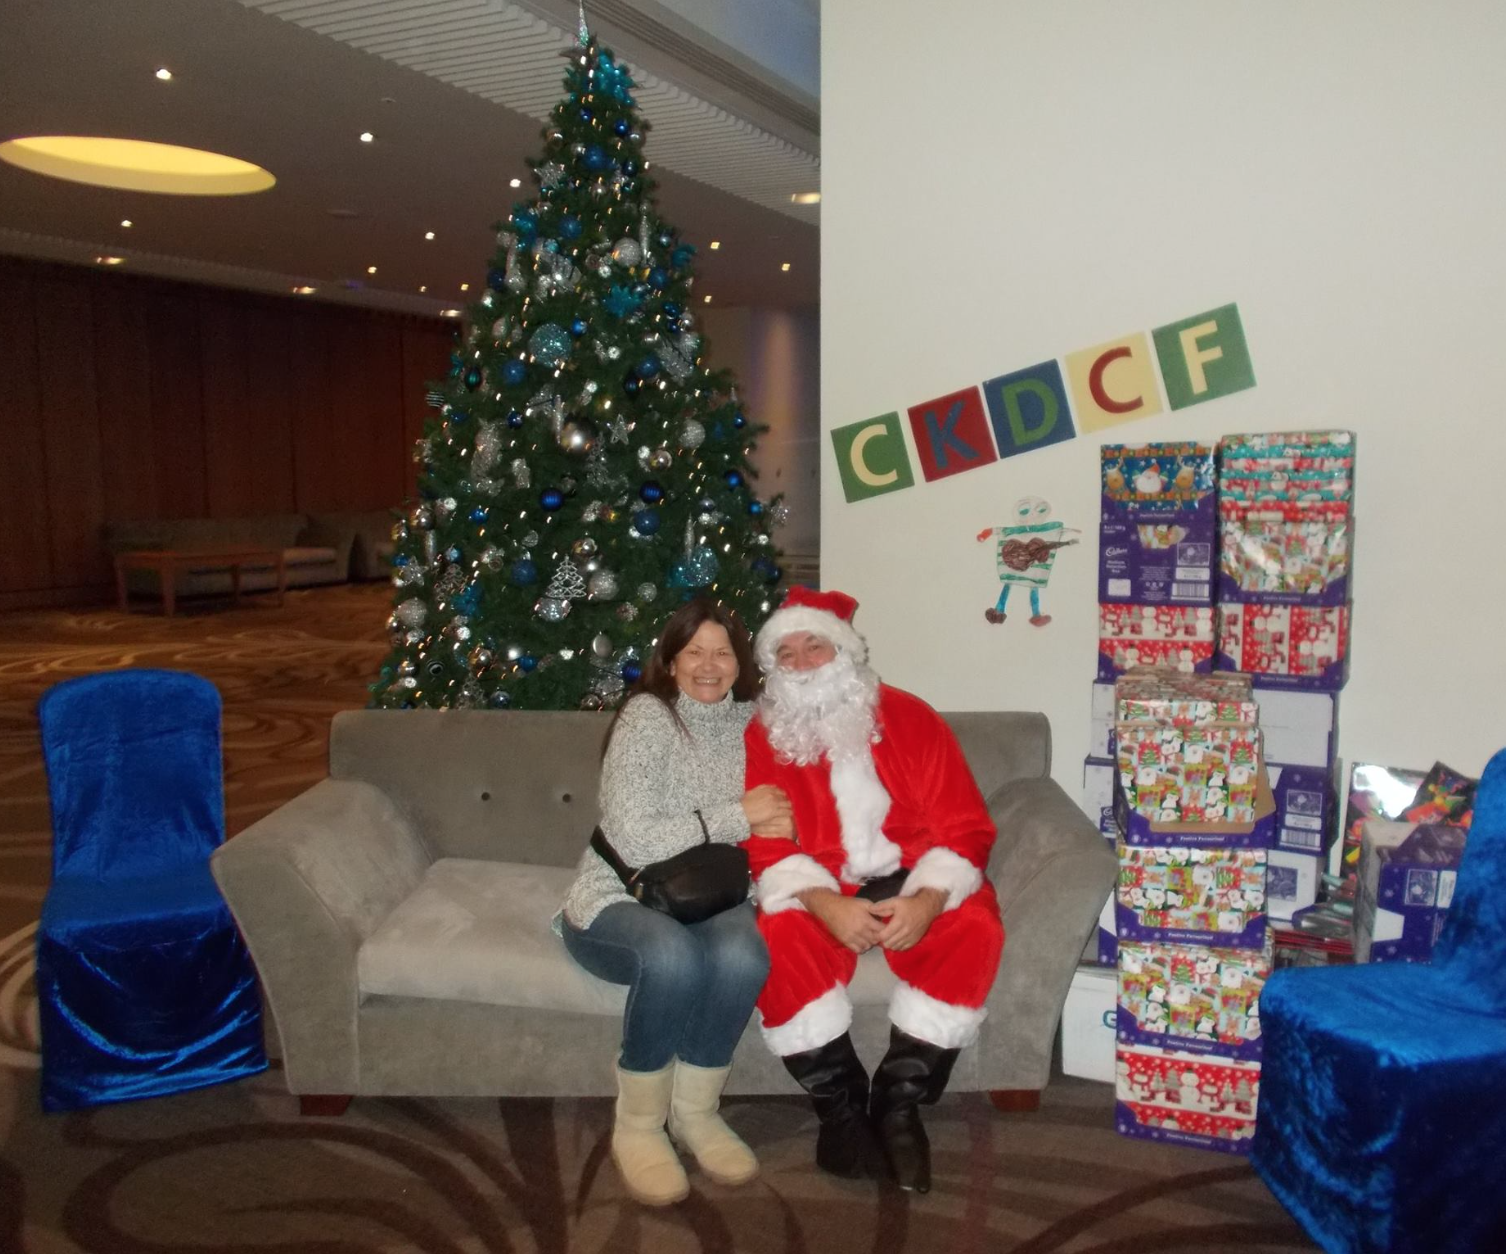 Ckdcf Delivers Gifts To Children S Cancer Ward This